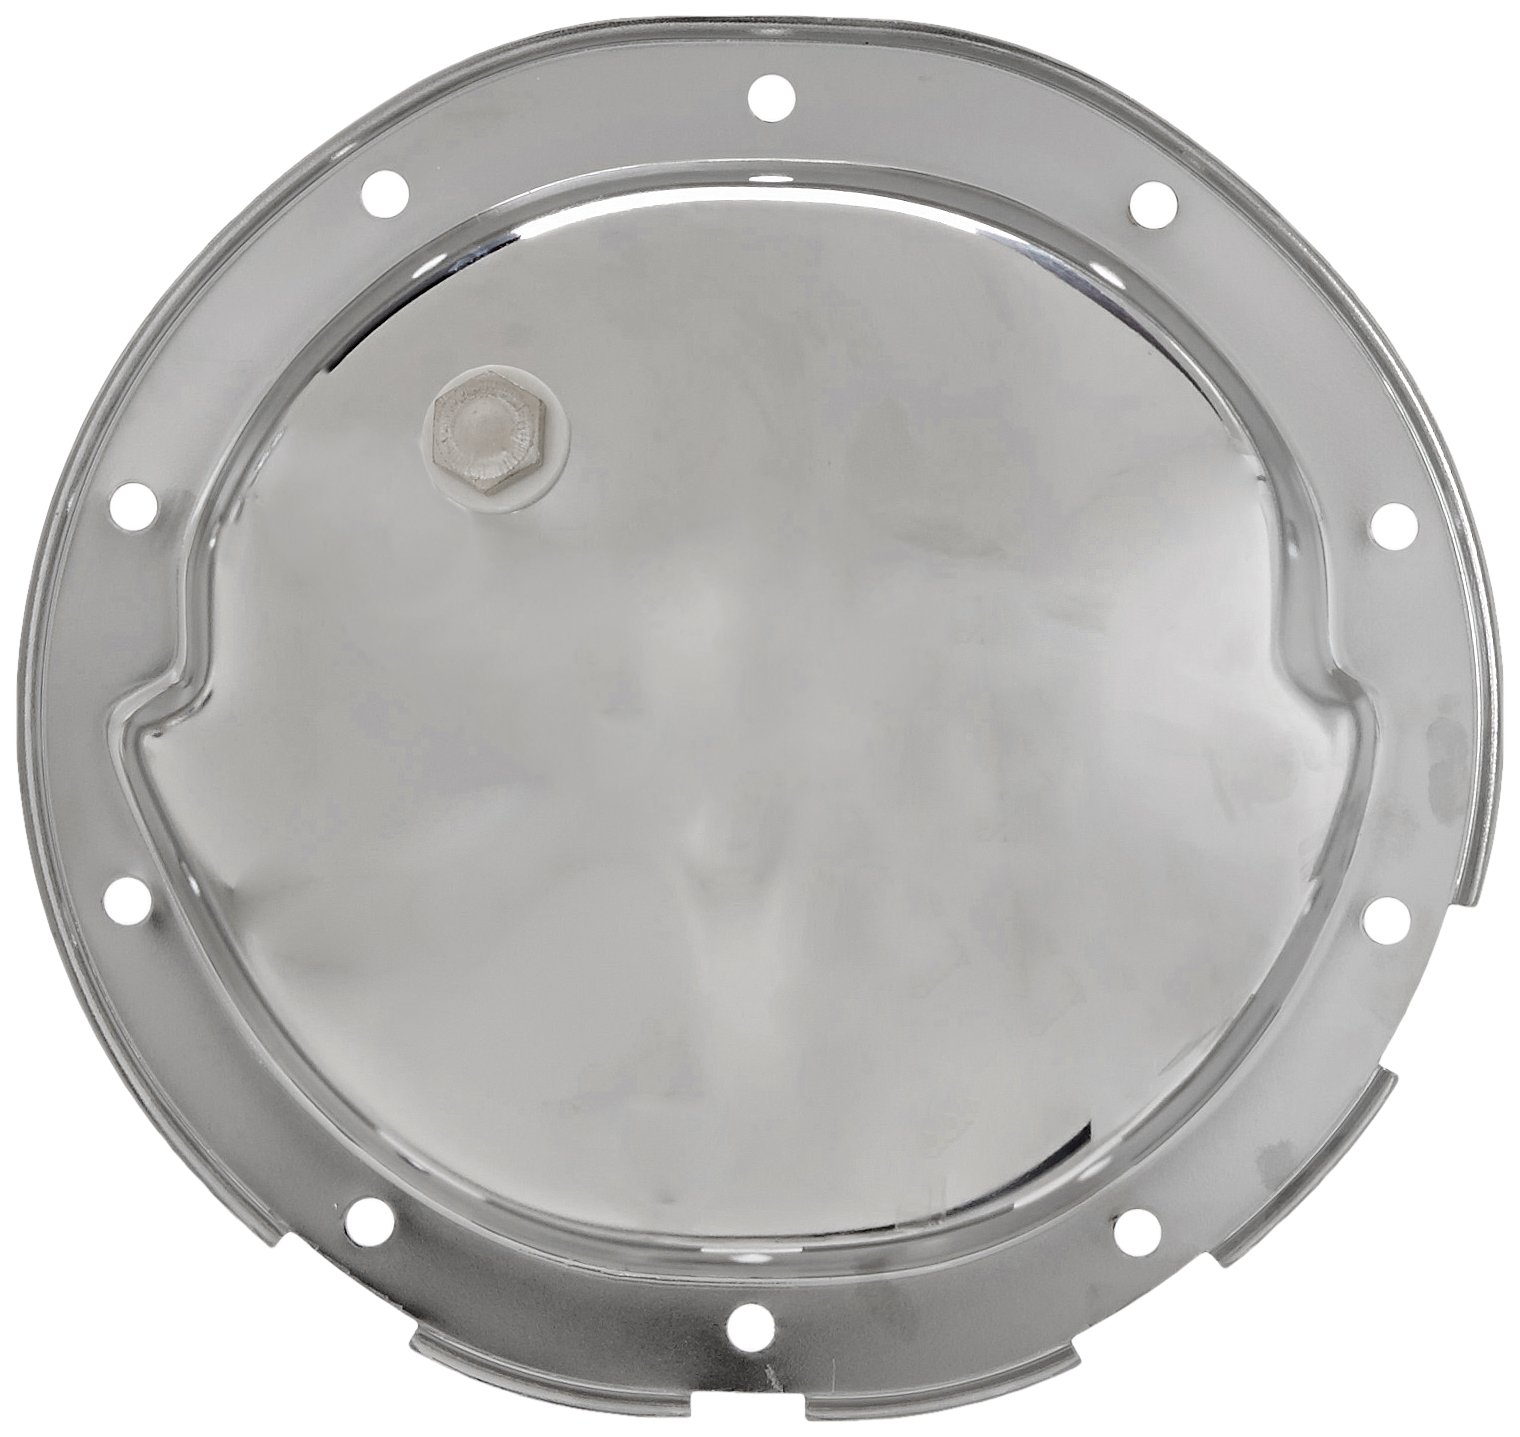 Trans-Dapt 9037 Chrome Differential Cover Kit by Trans-Dapt Performance (Image #3)